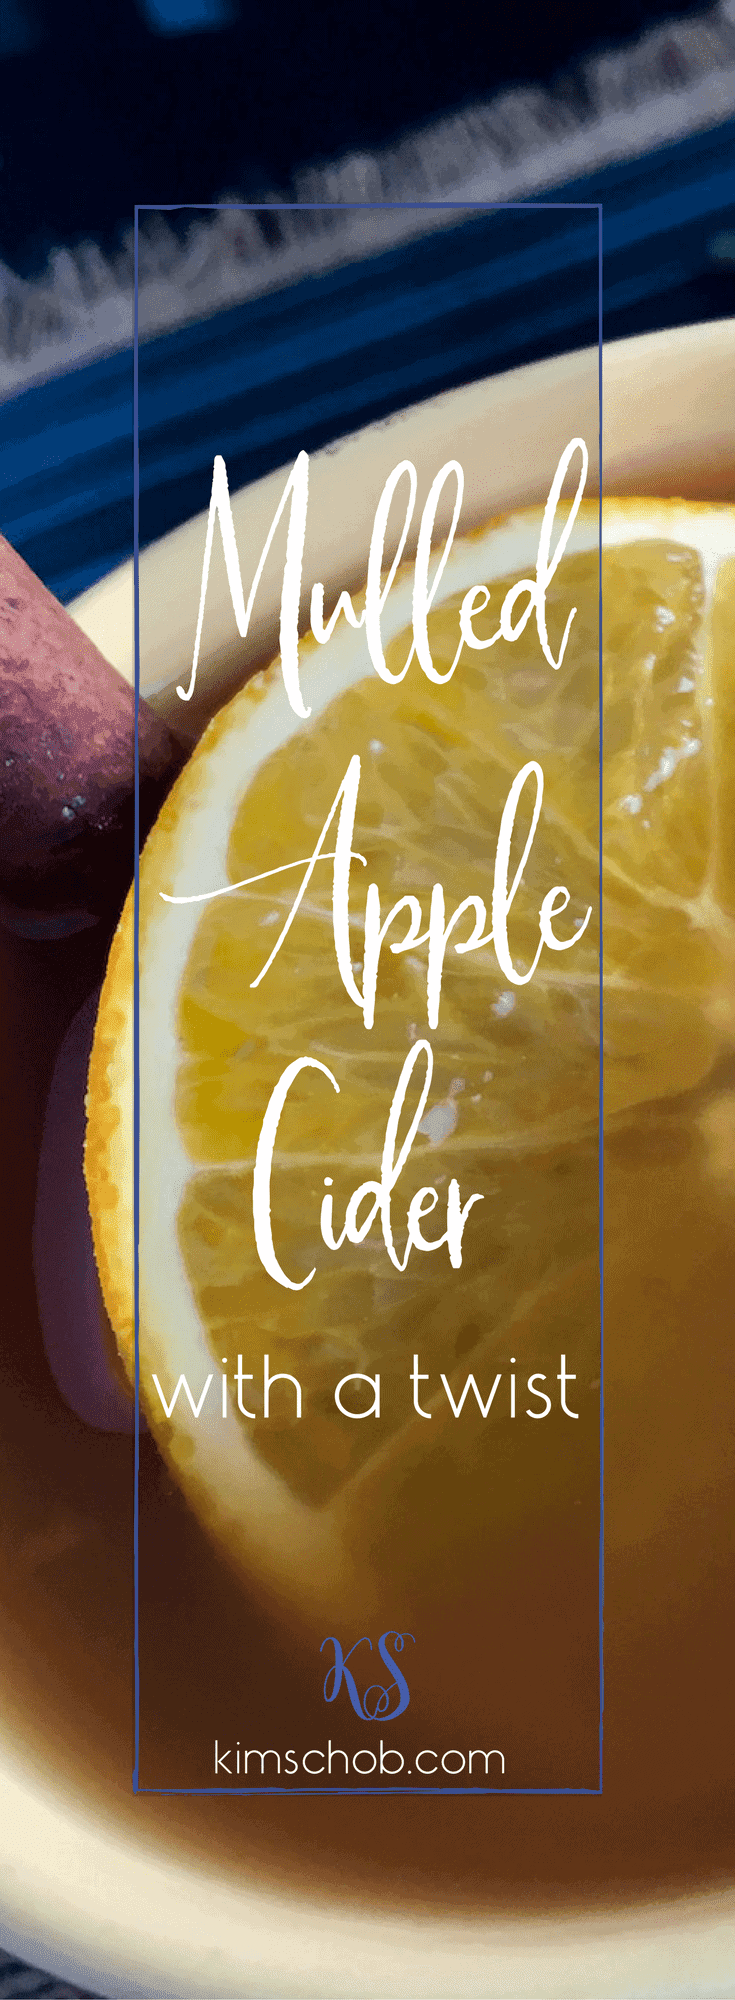 """Mulled Apple Cider with a Twist 